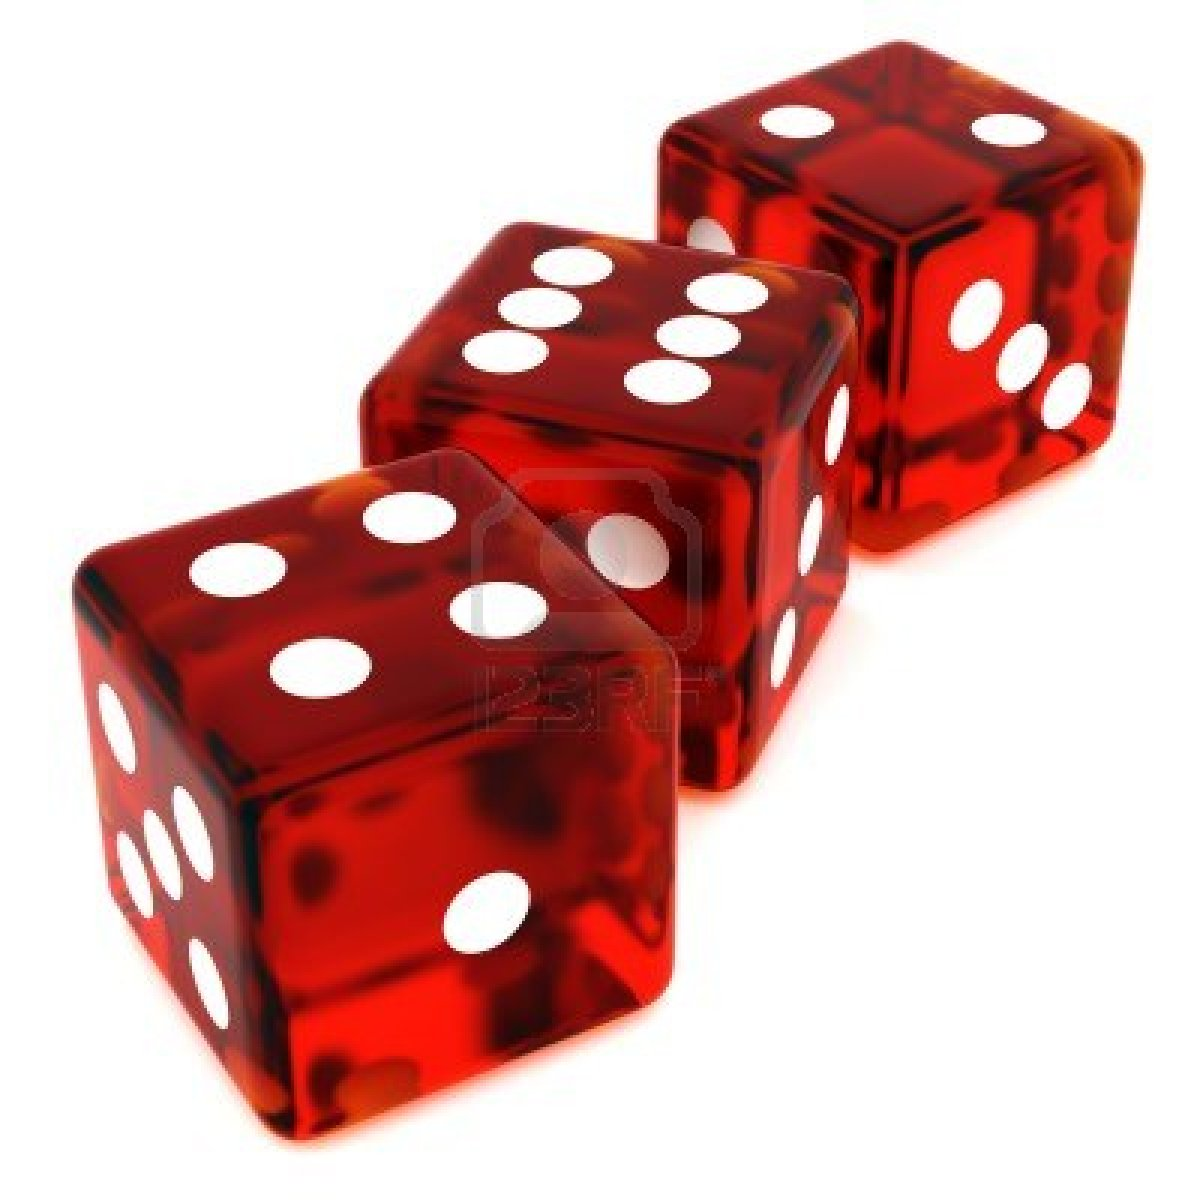 Teens Shot Over Dice Game